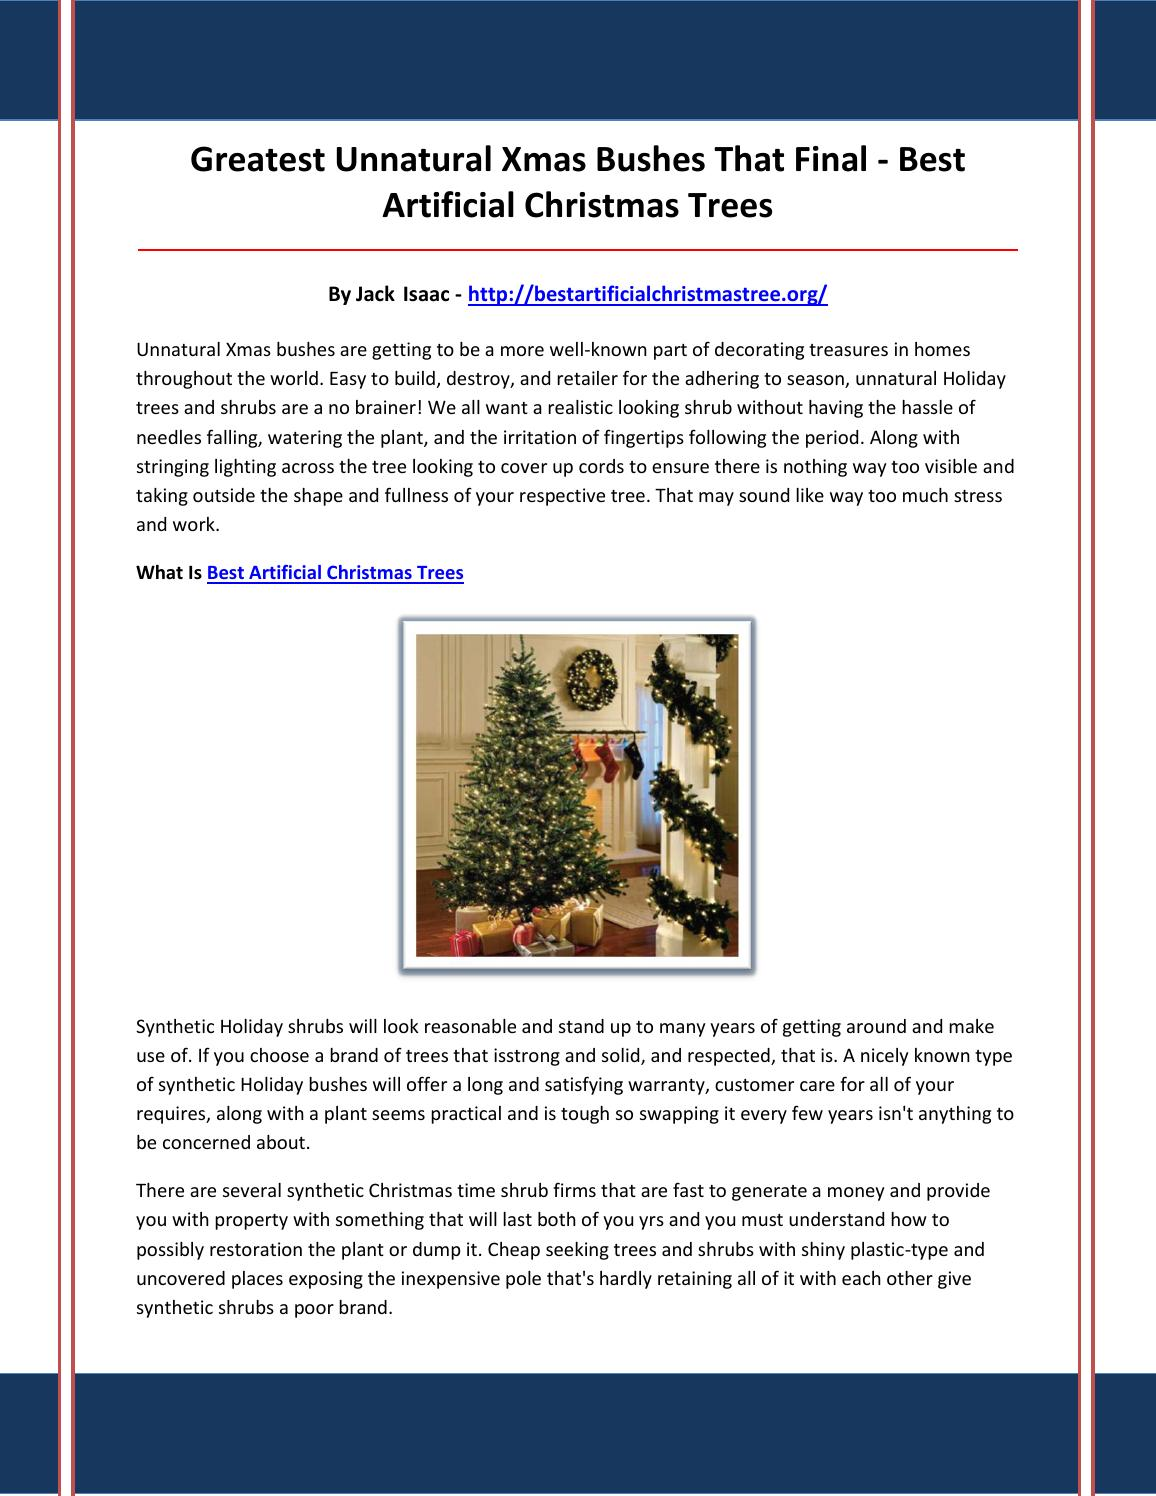 2 best artificial christmas trees by assfsss - issuu